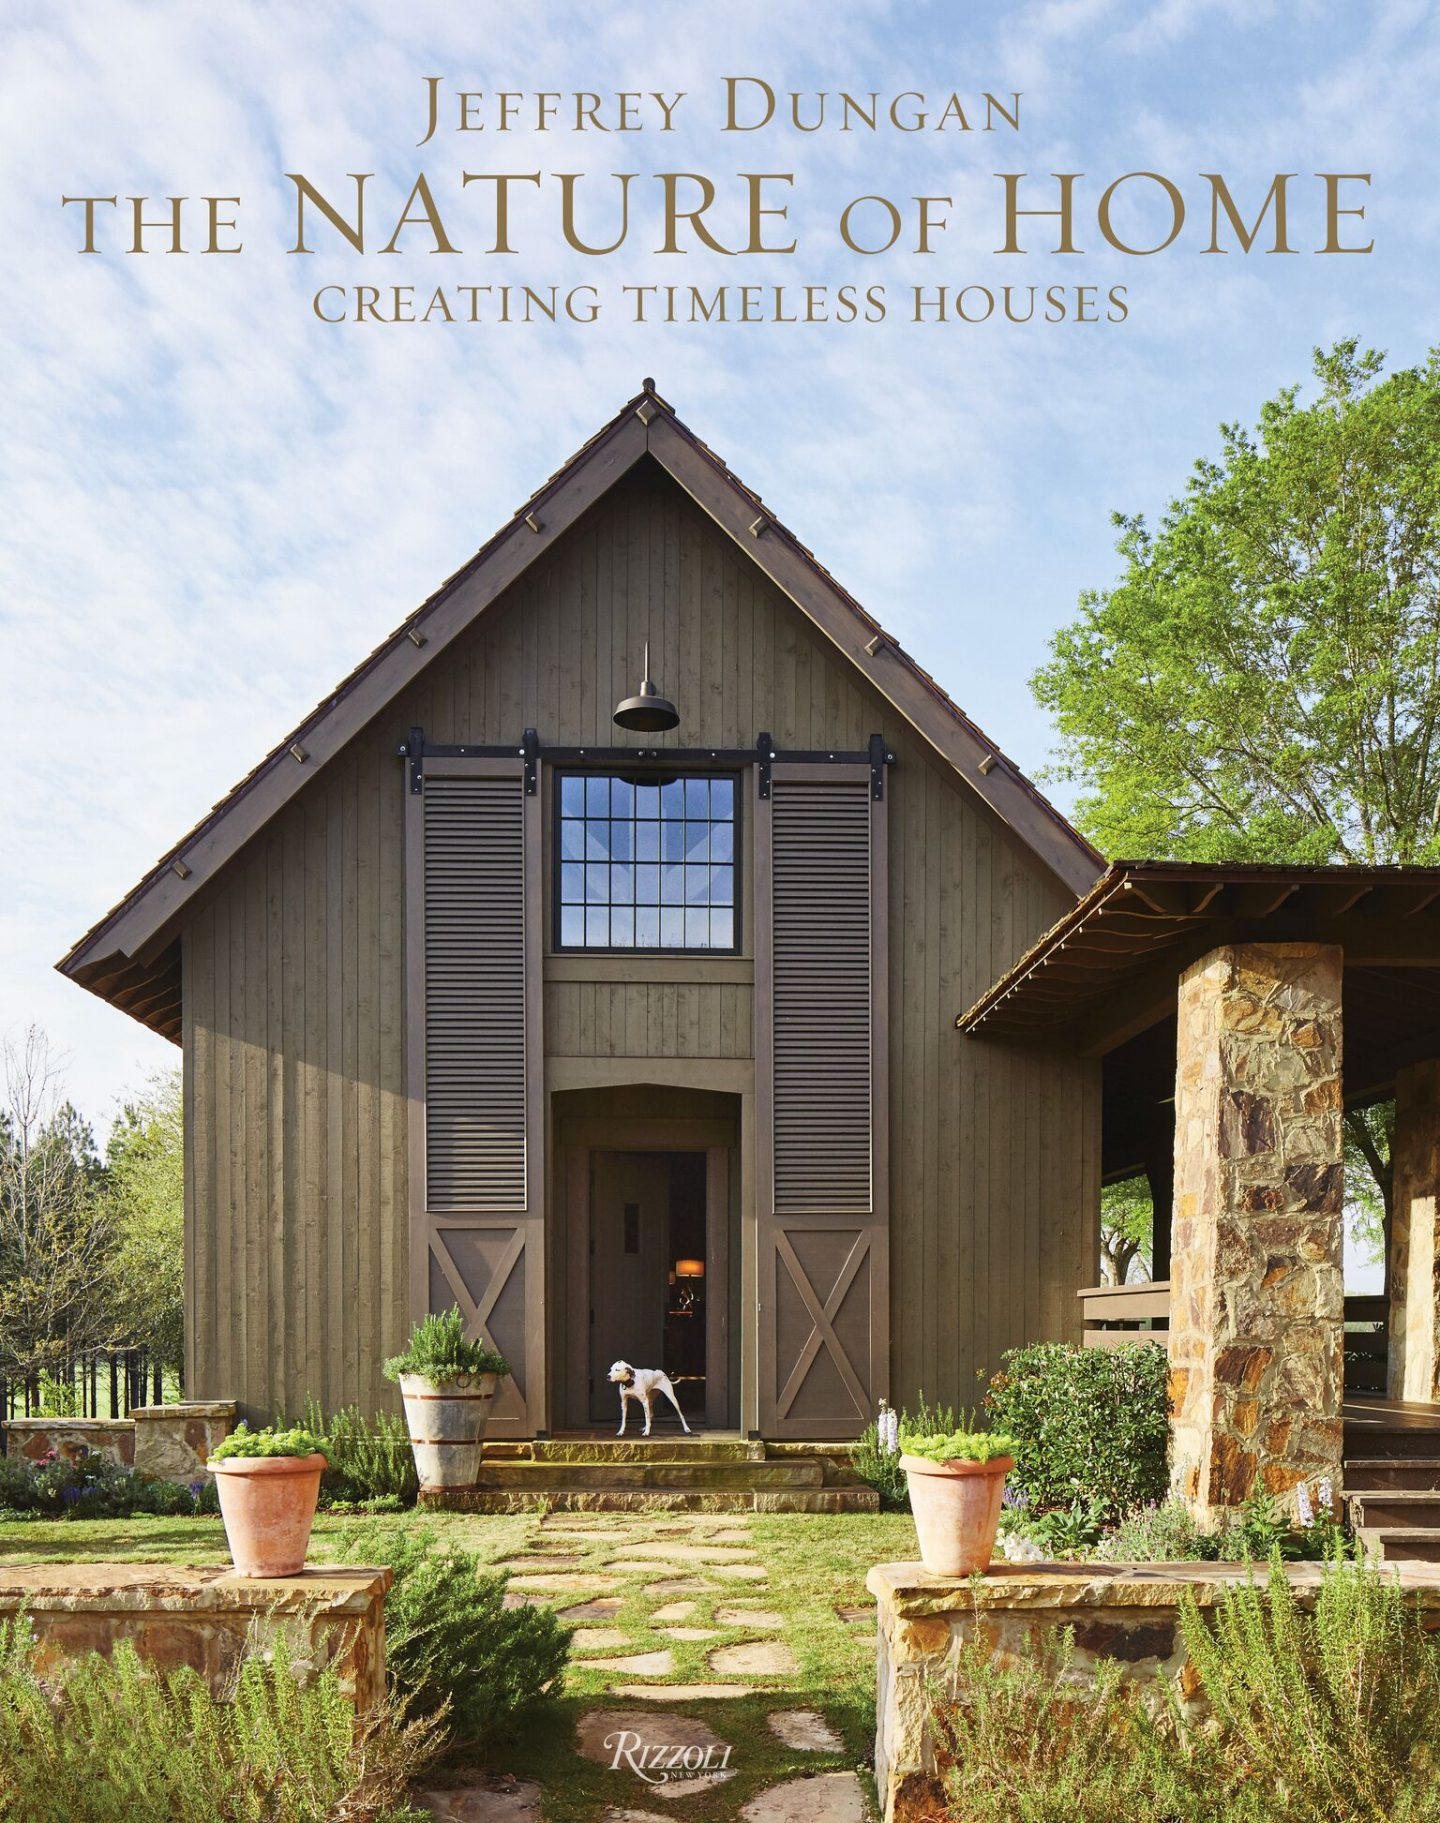 Jeffrey Dungan The Nature of Home: Creating Timeless Houses.